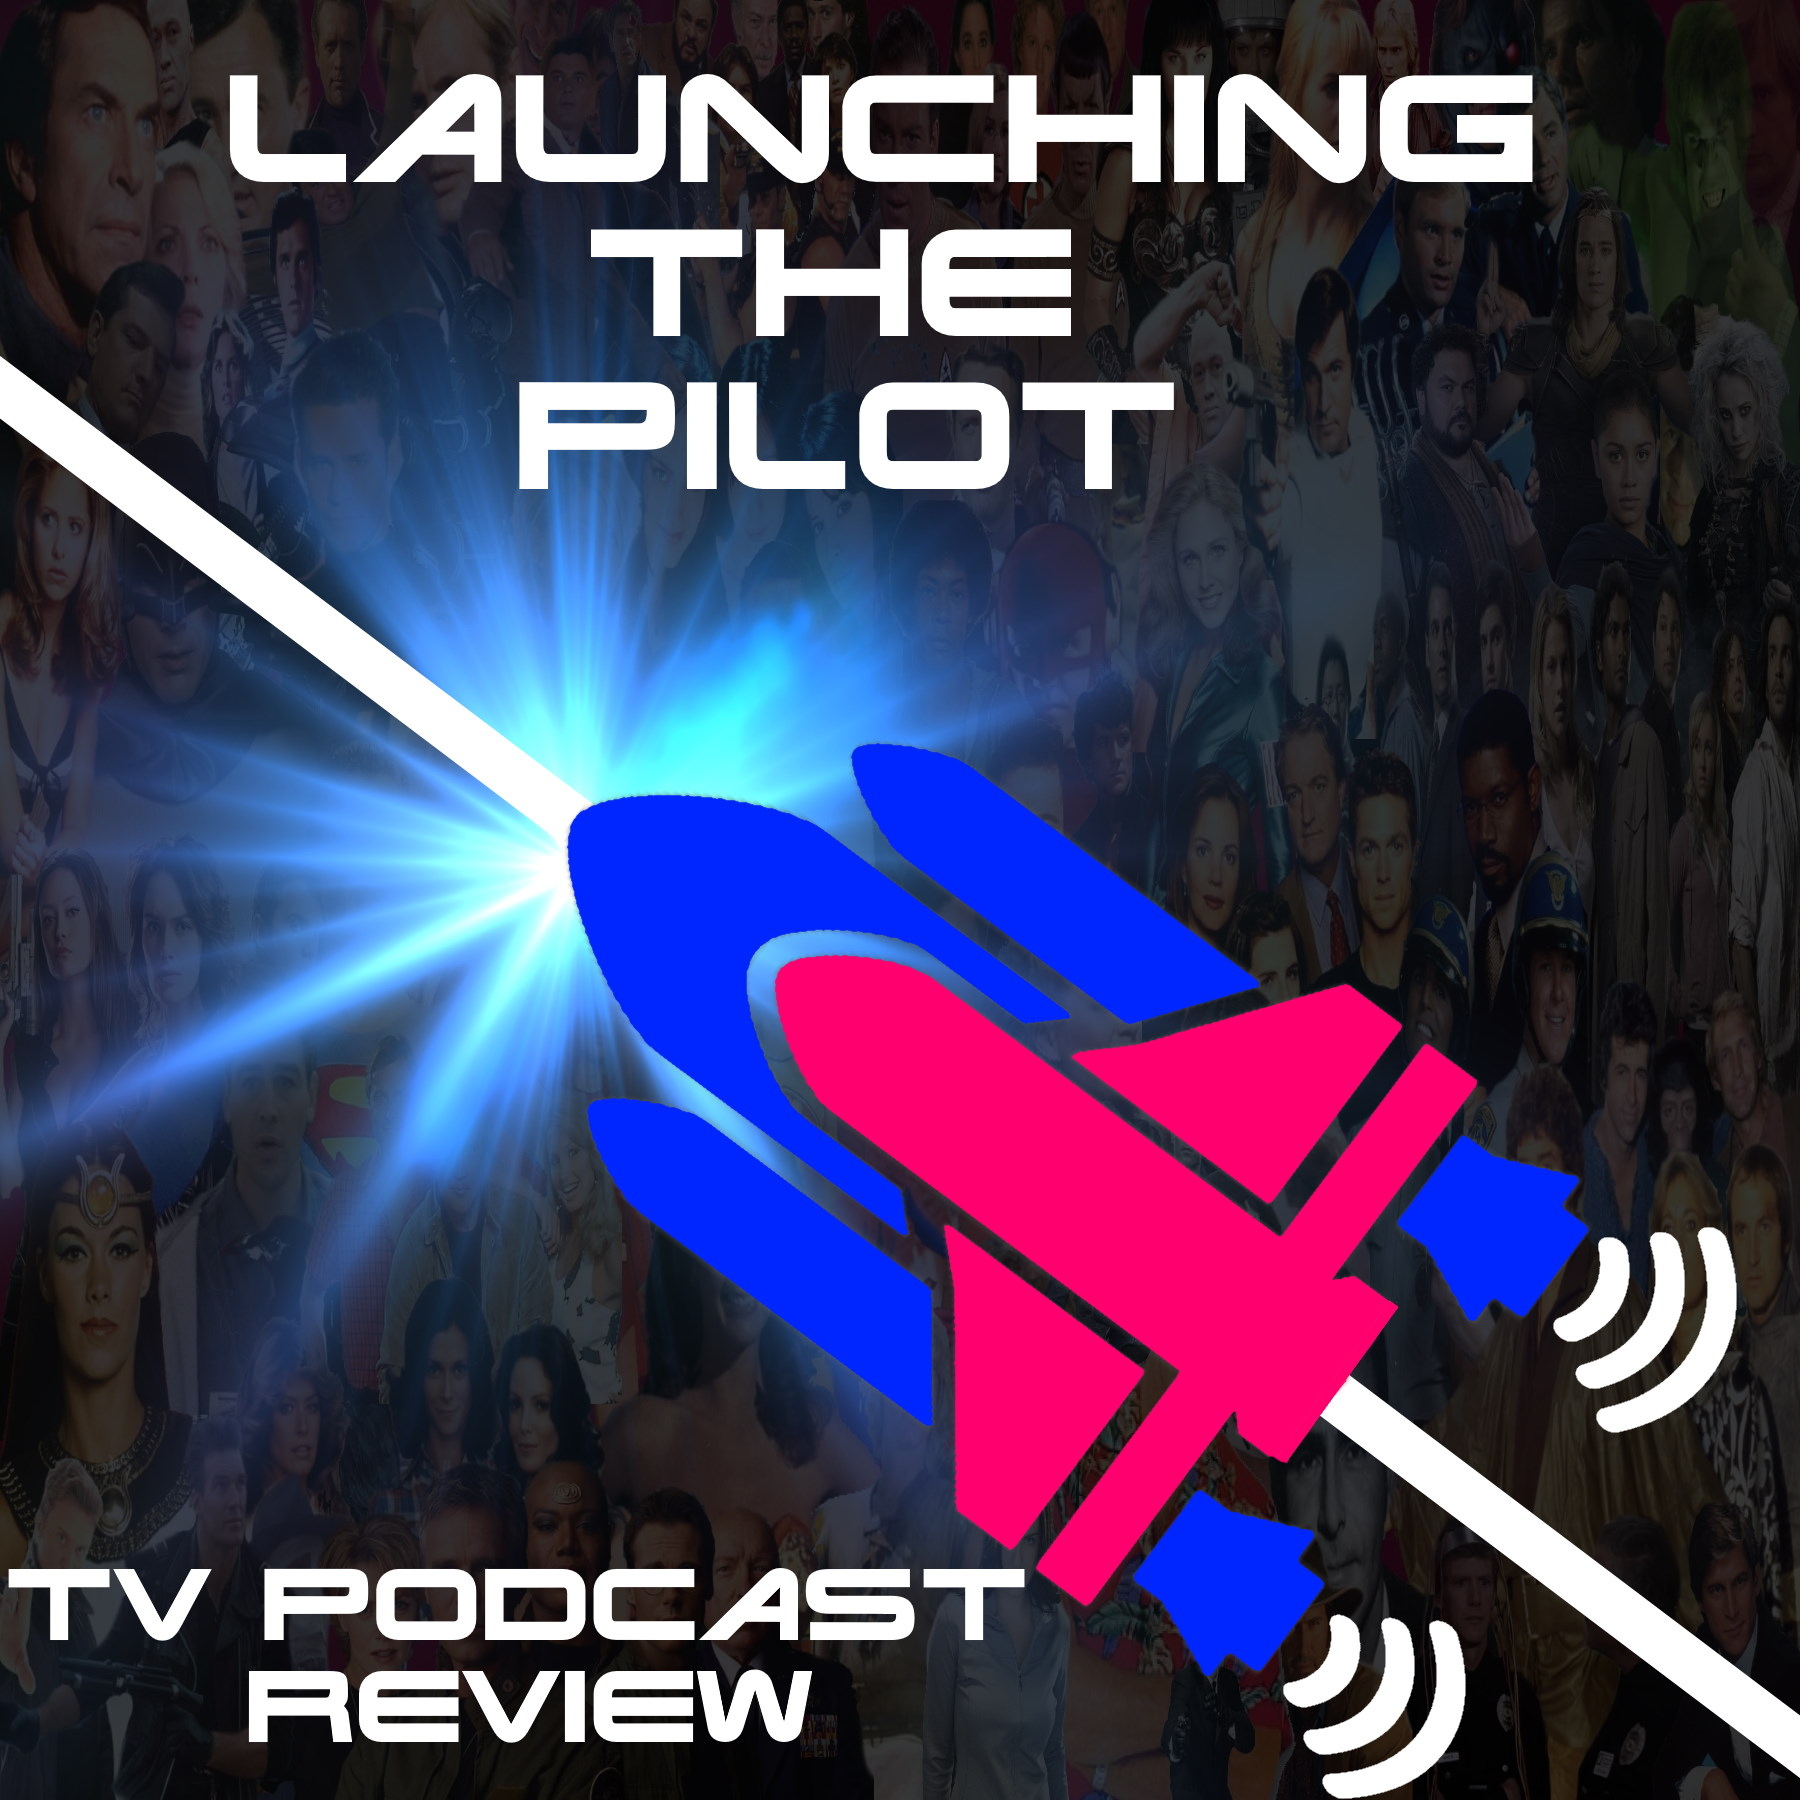 Launching The Pilot